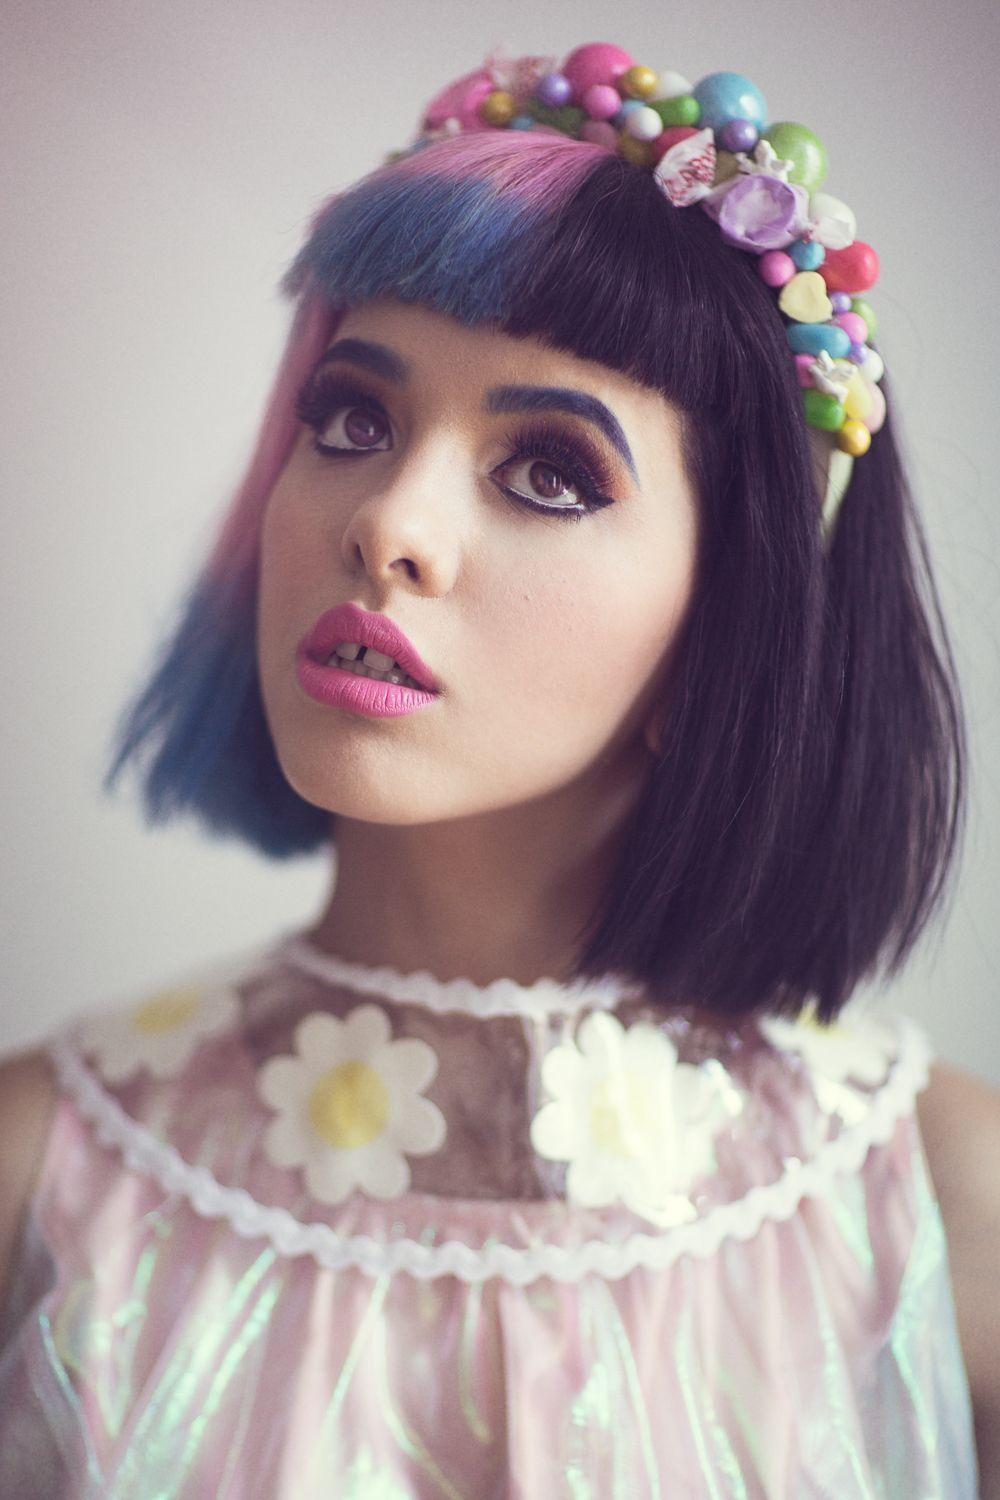 Melanie Martinez Iphone Wallpapers Cute